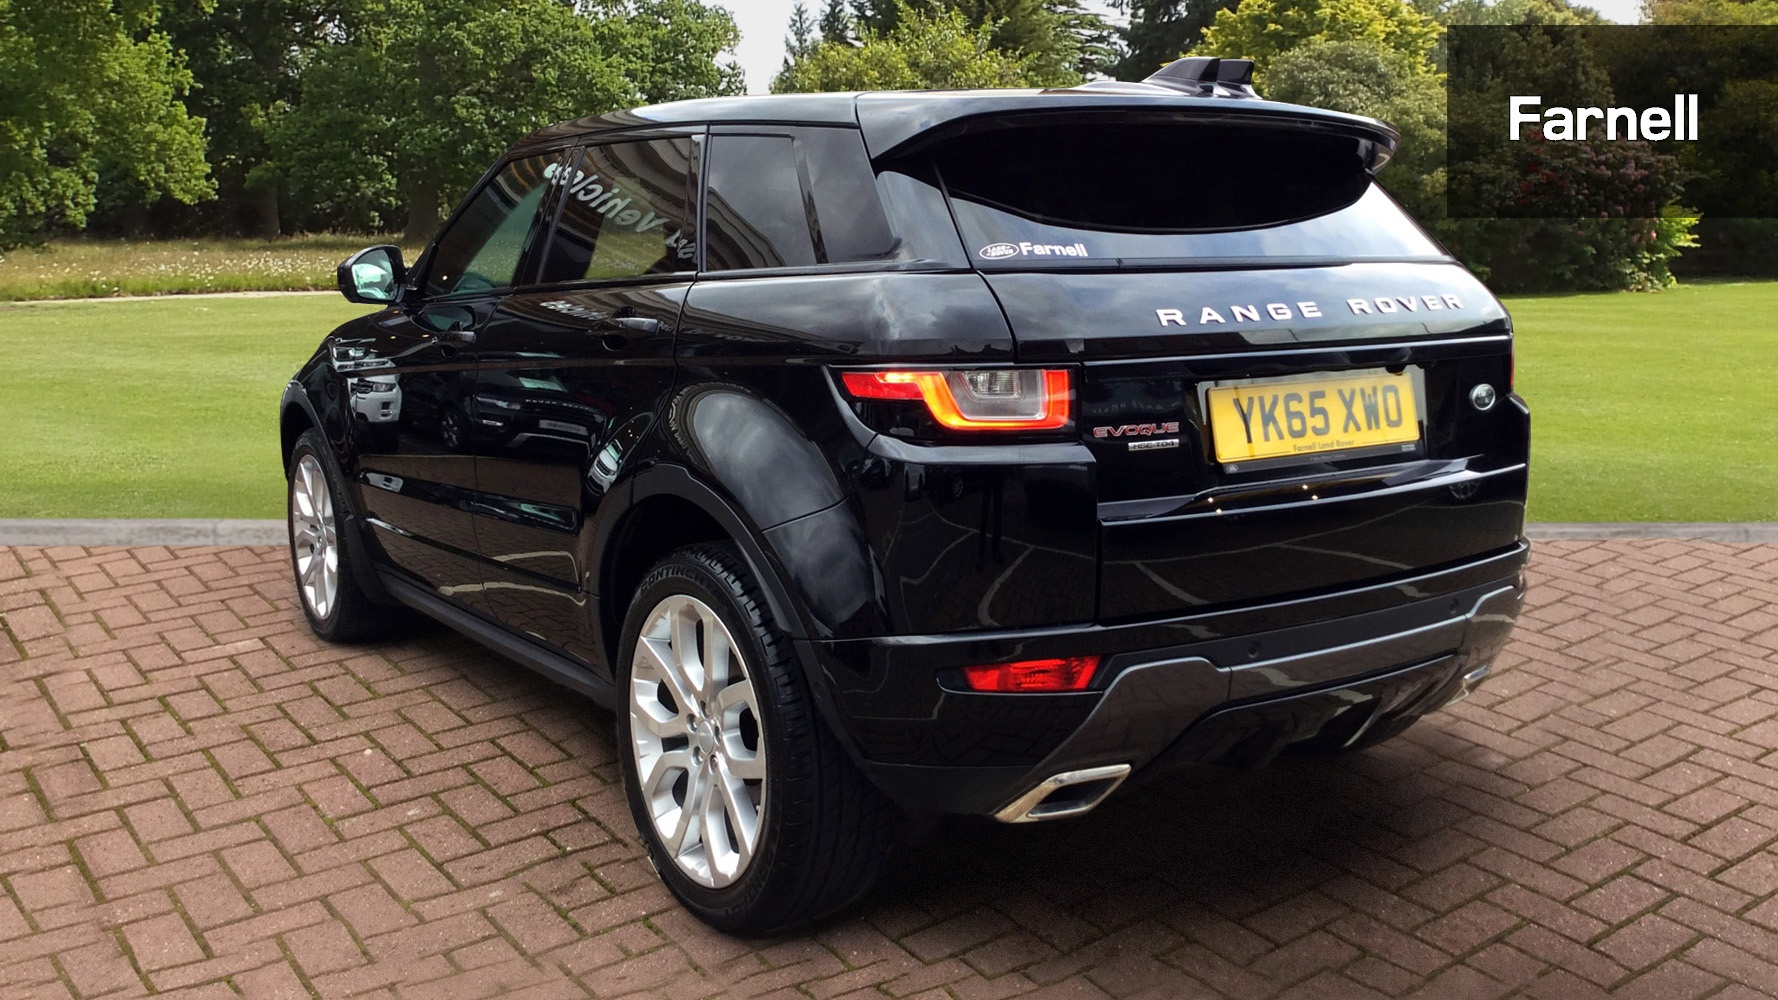 100 lamb land rover used land rover range rover evoque 2 2 ed4 pure 5dr 2wd diesel new. Black Bedroom Furniture Sets. Home Design Ideas